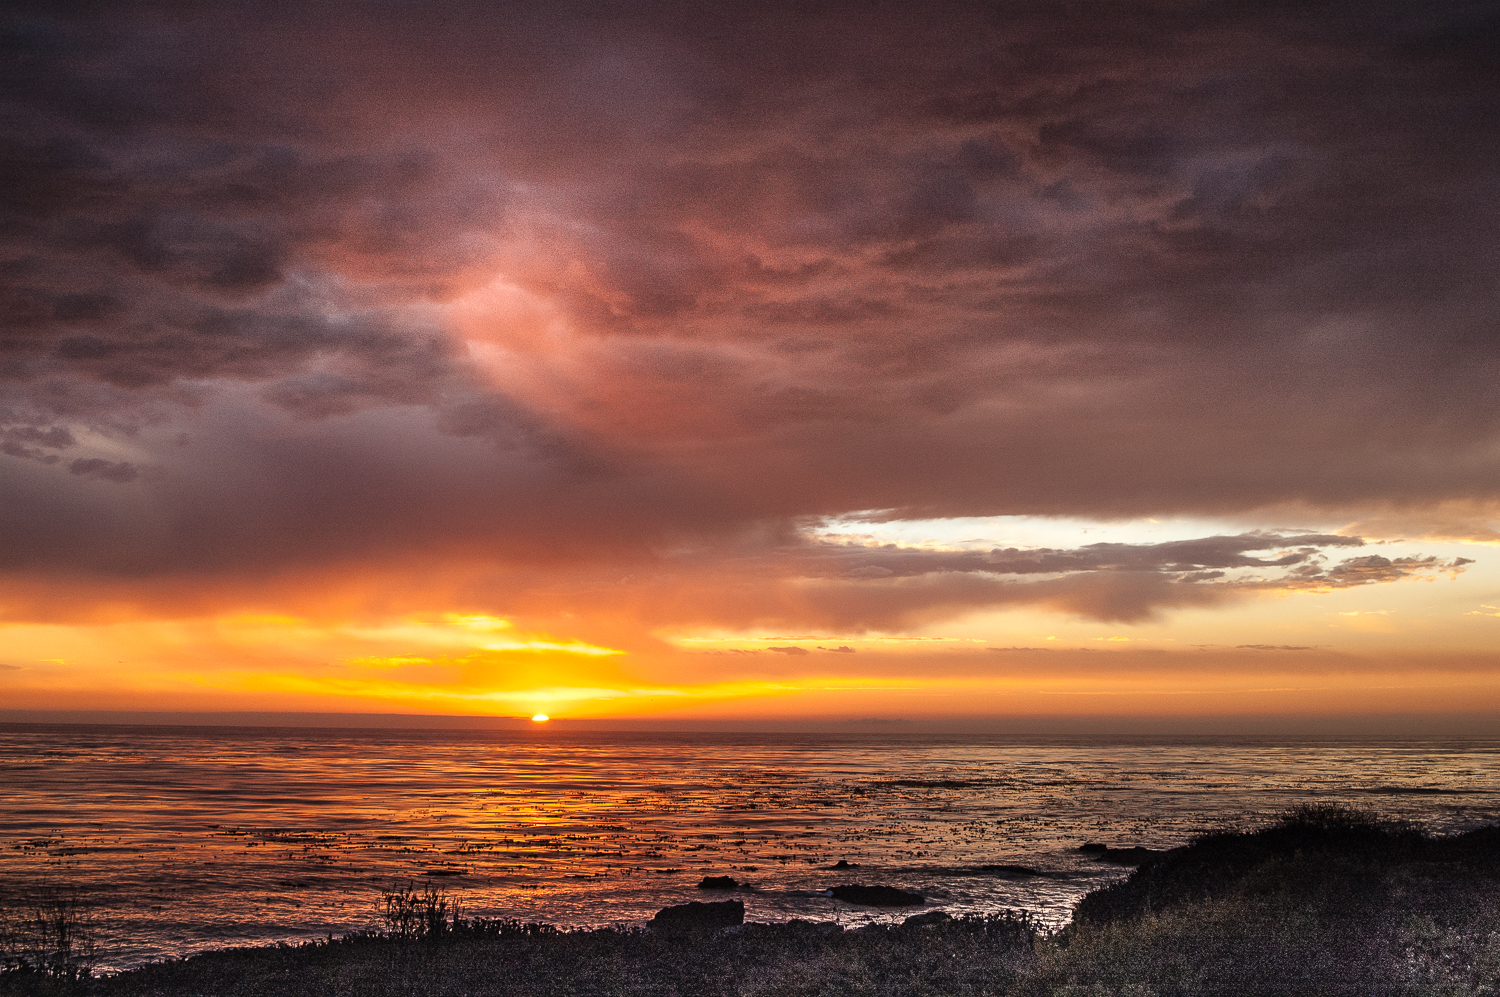 Sunset over the Pacific, Monterey, CA